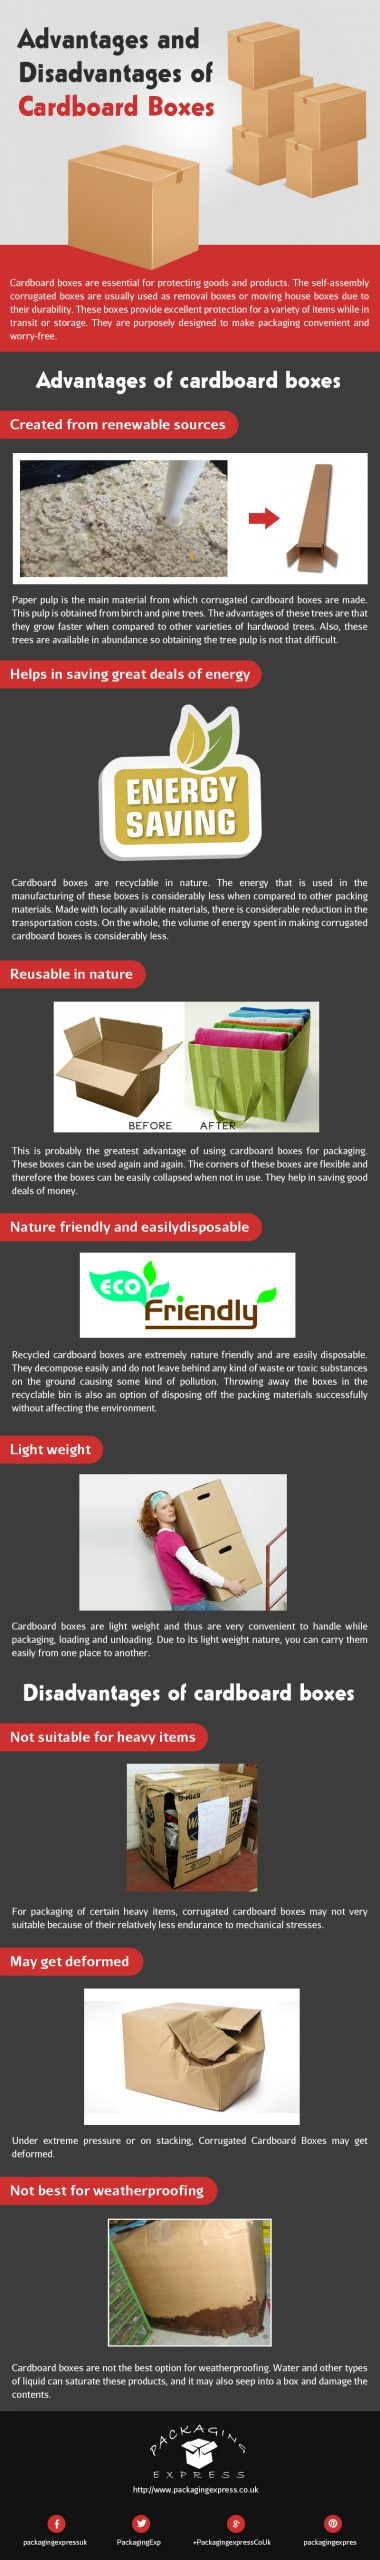 cardboard-boxes-infographic